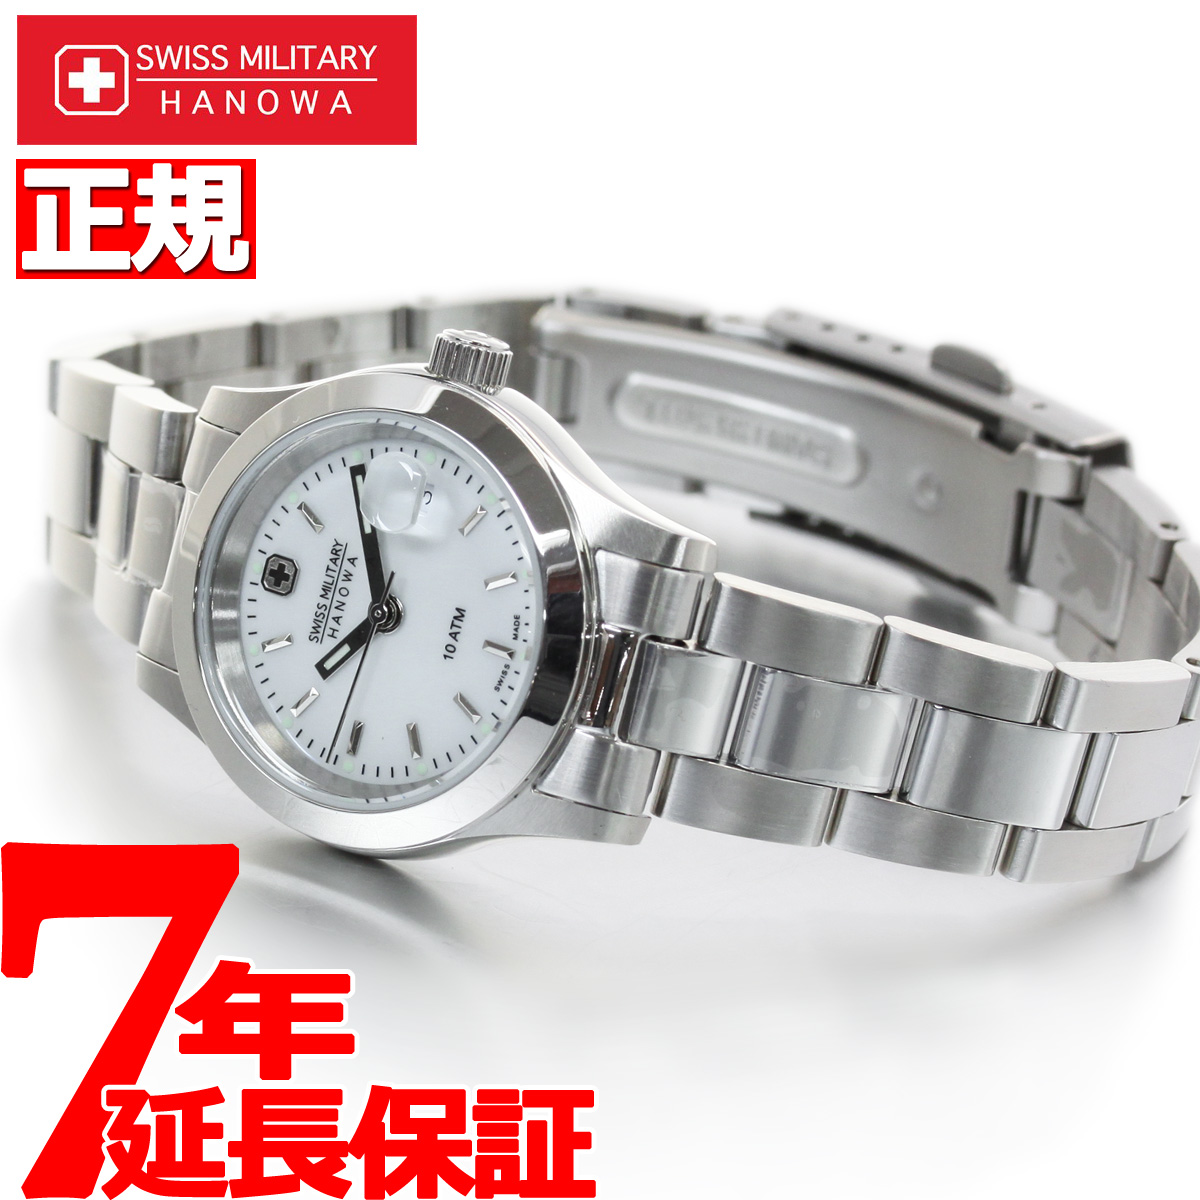 swiss military手表_asr: 瑞士军事高雅手表一对表SWISS MILITARY ELEGANT ML102 SWISS MILITARY ...